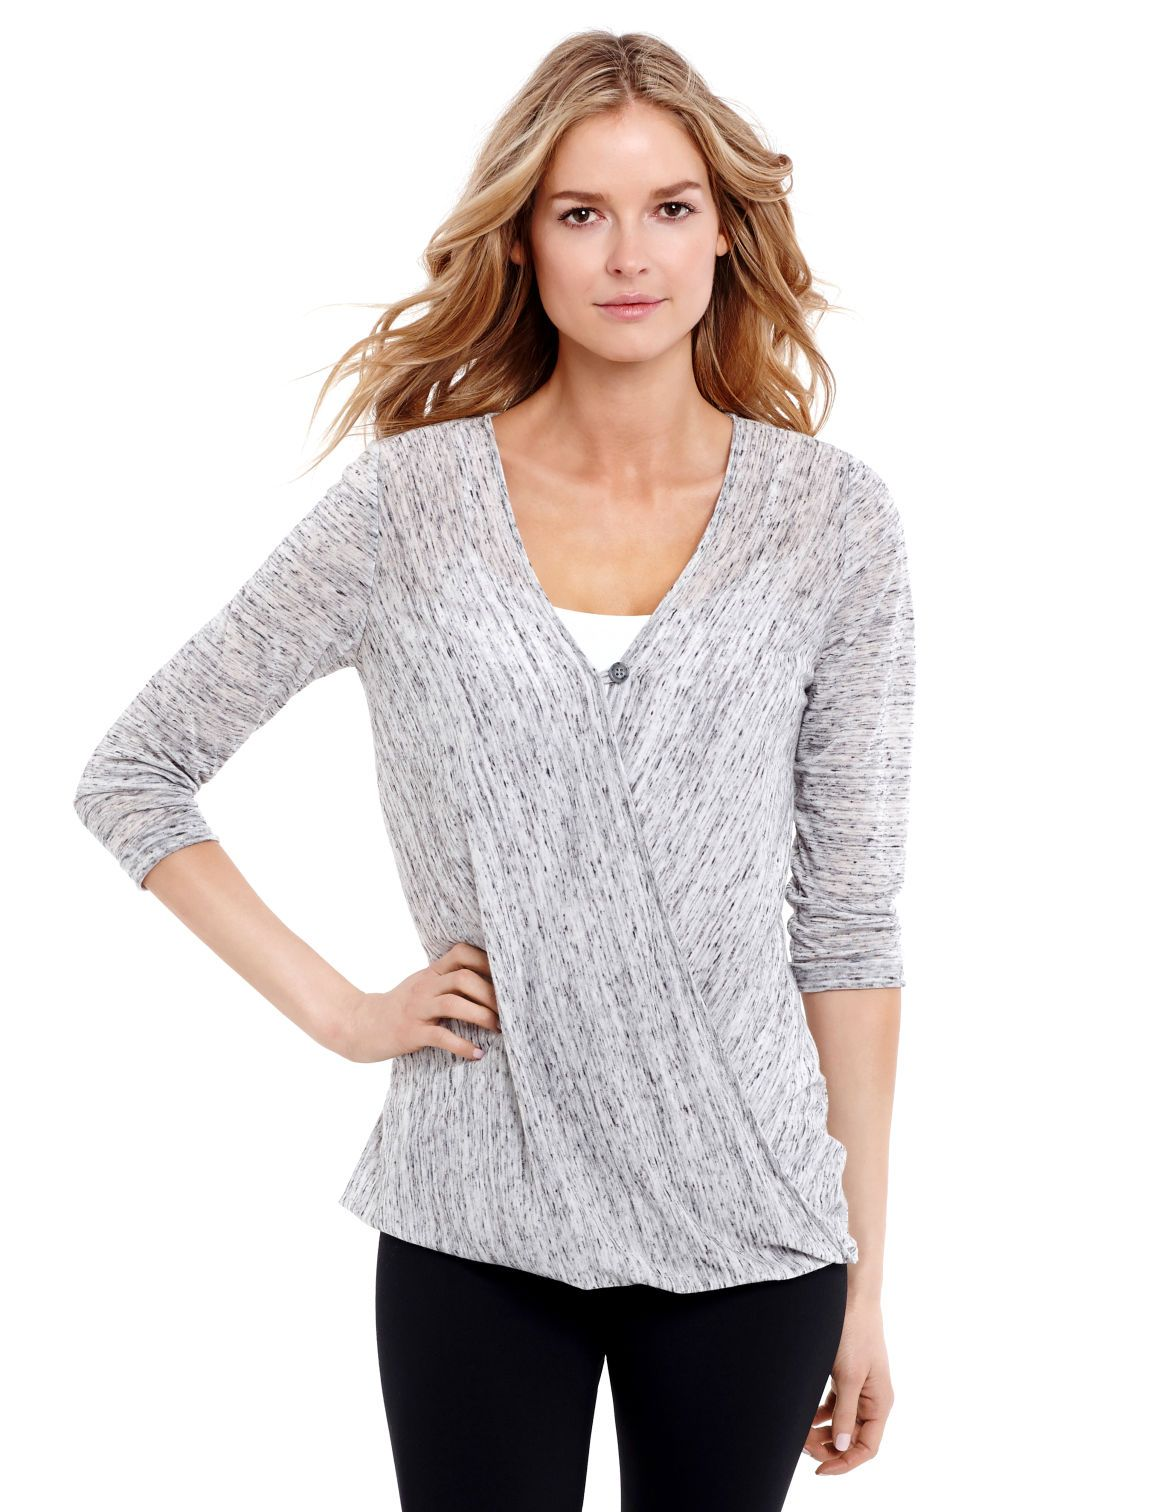 Nurse in style 34 sleeve pull over wrap nursing top by jessica jessica simpson maternity faux wrap nursing top shop all maternity women macys ombrellifo Gallery